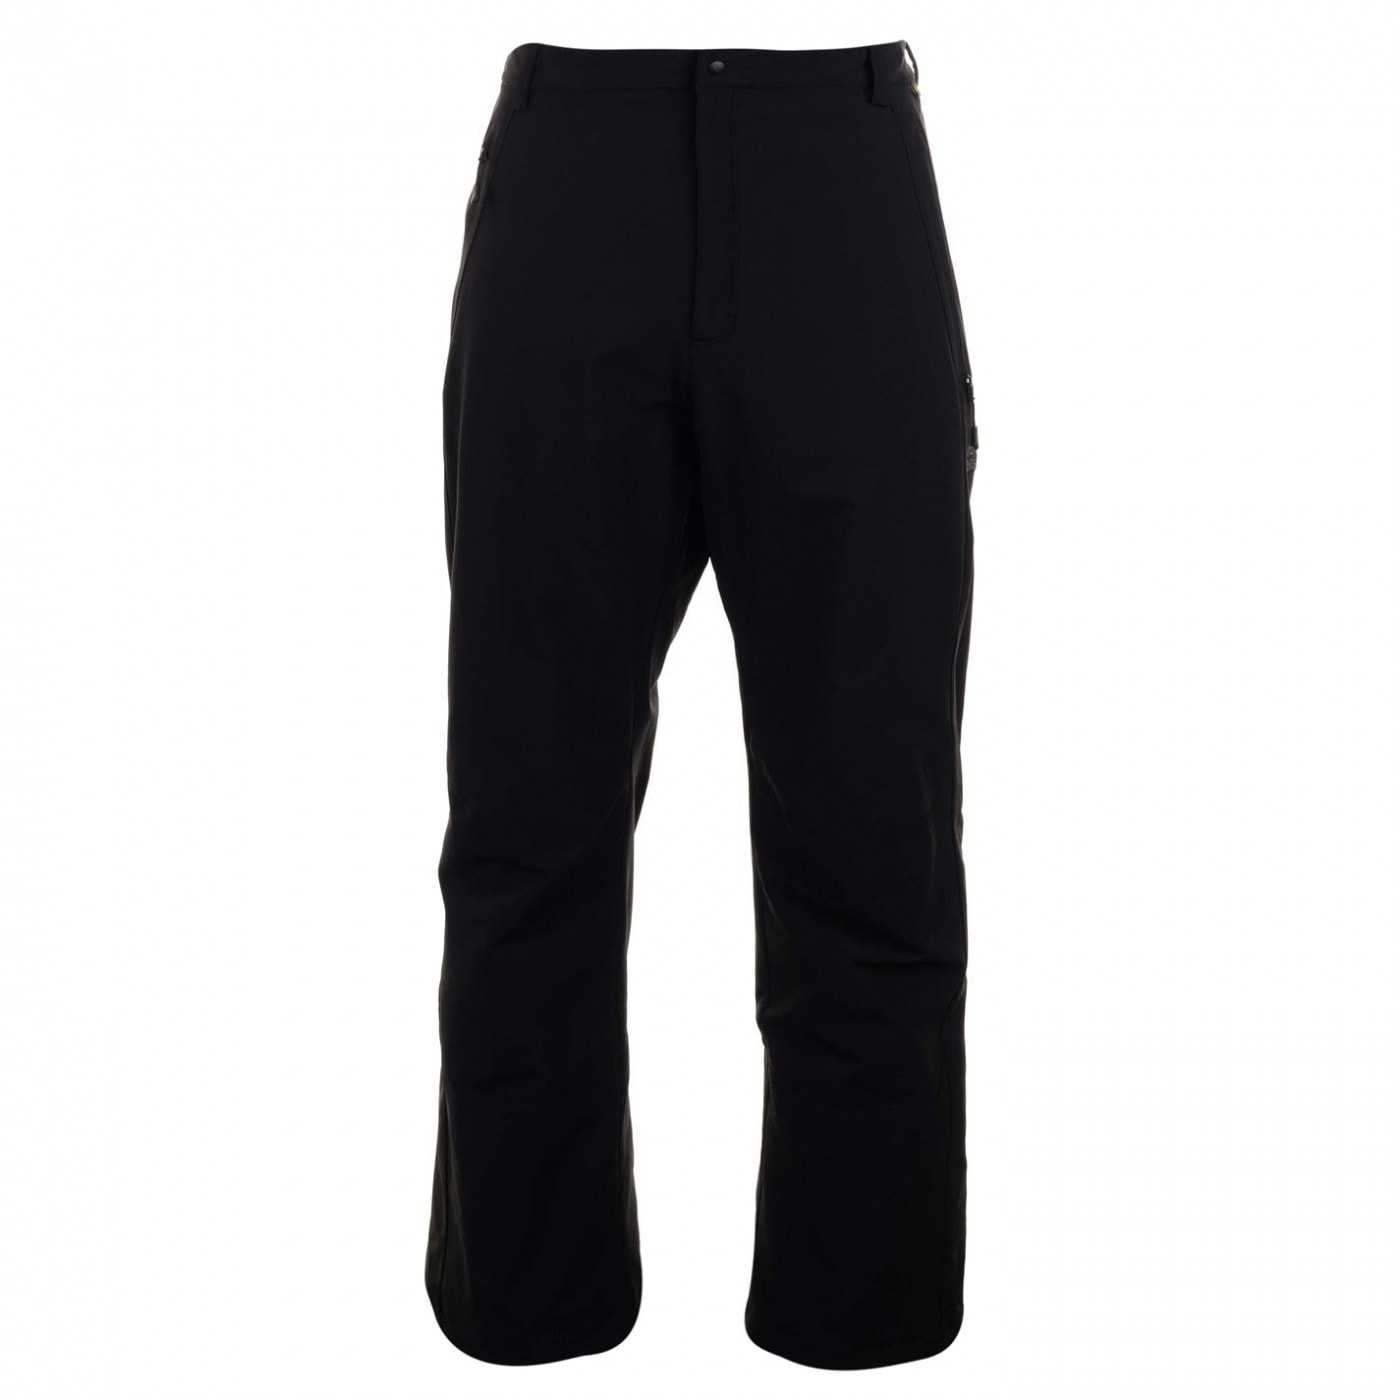 Jack Wolfskin Activate Walking Trousers Mens